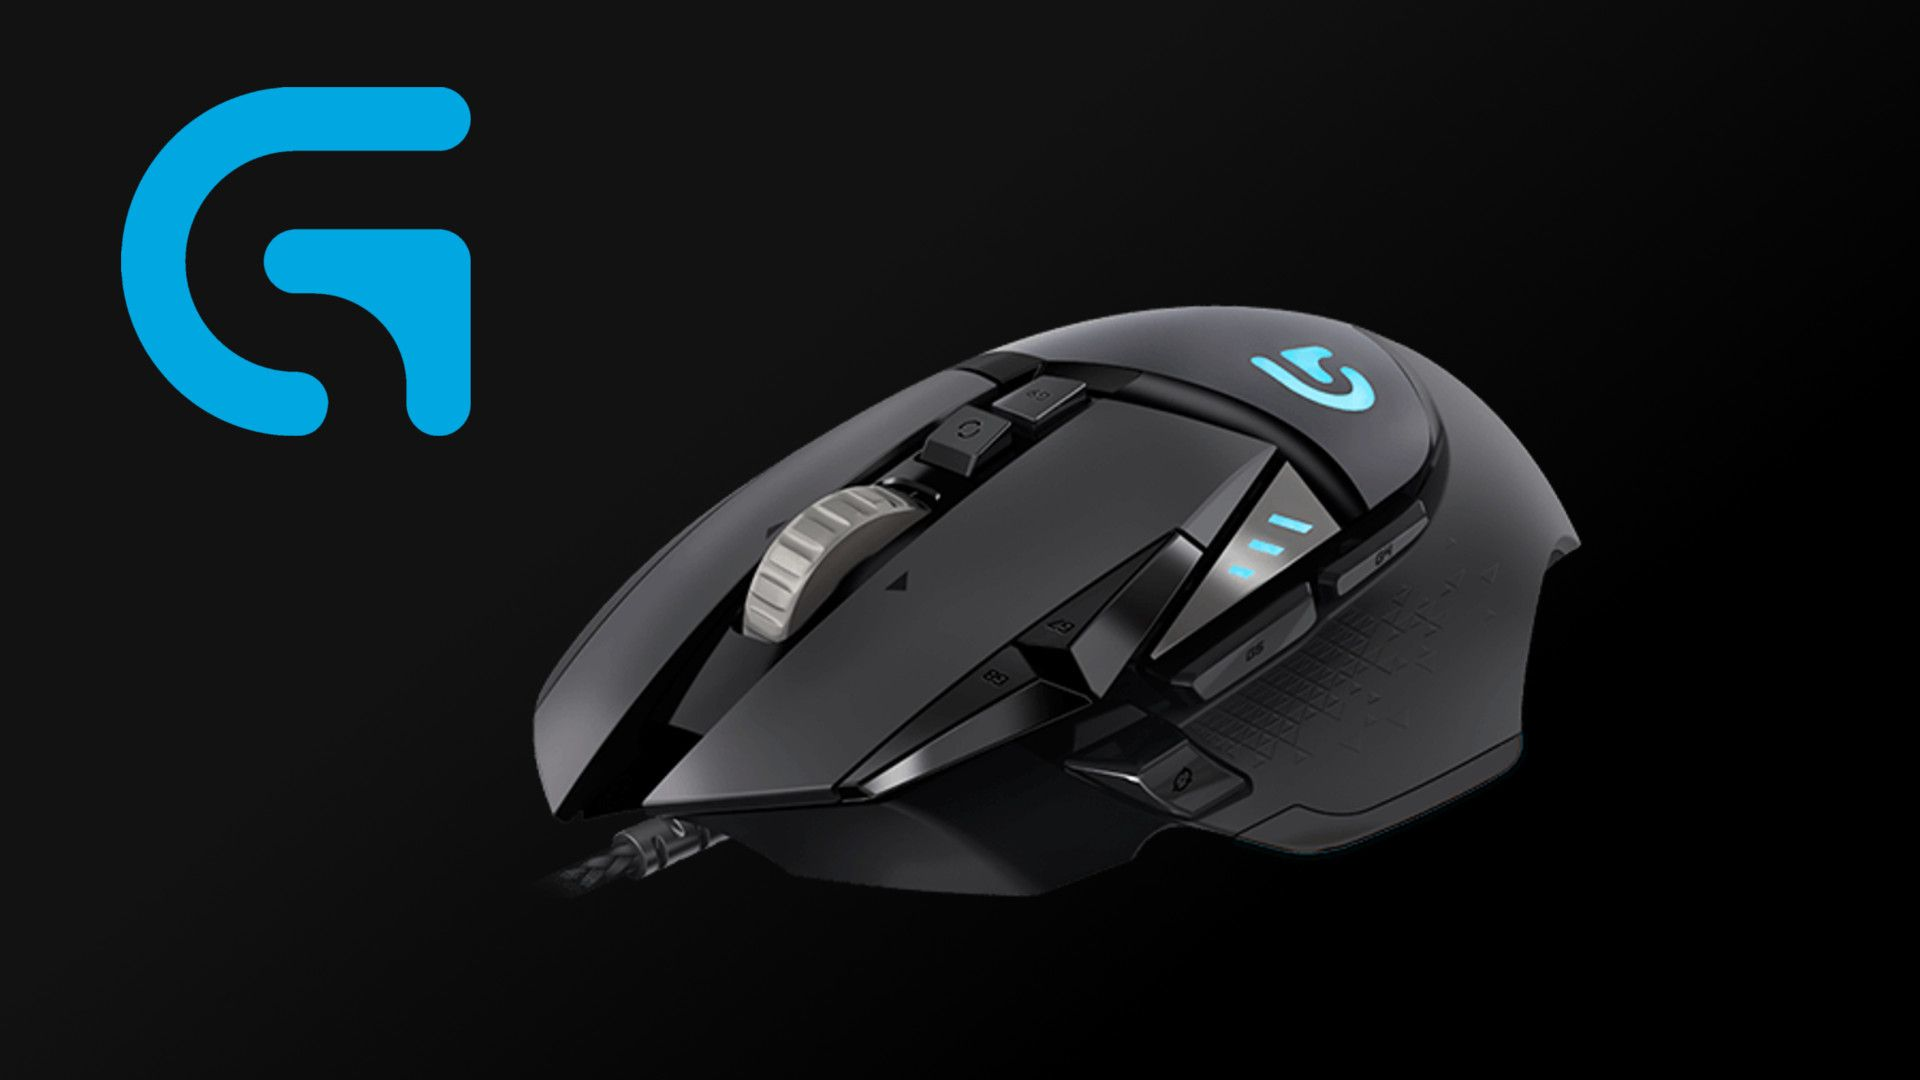 logitech g29 wallpaper